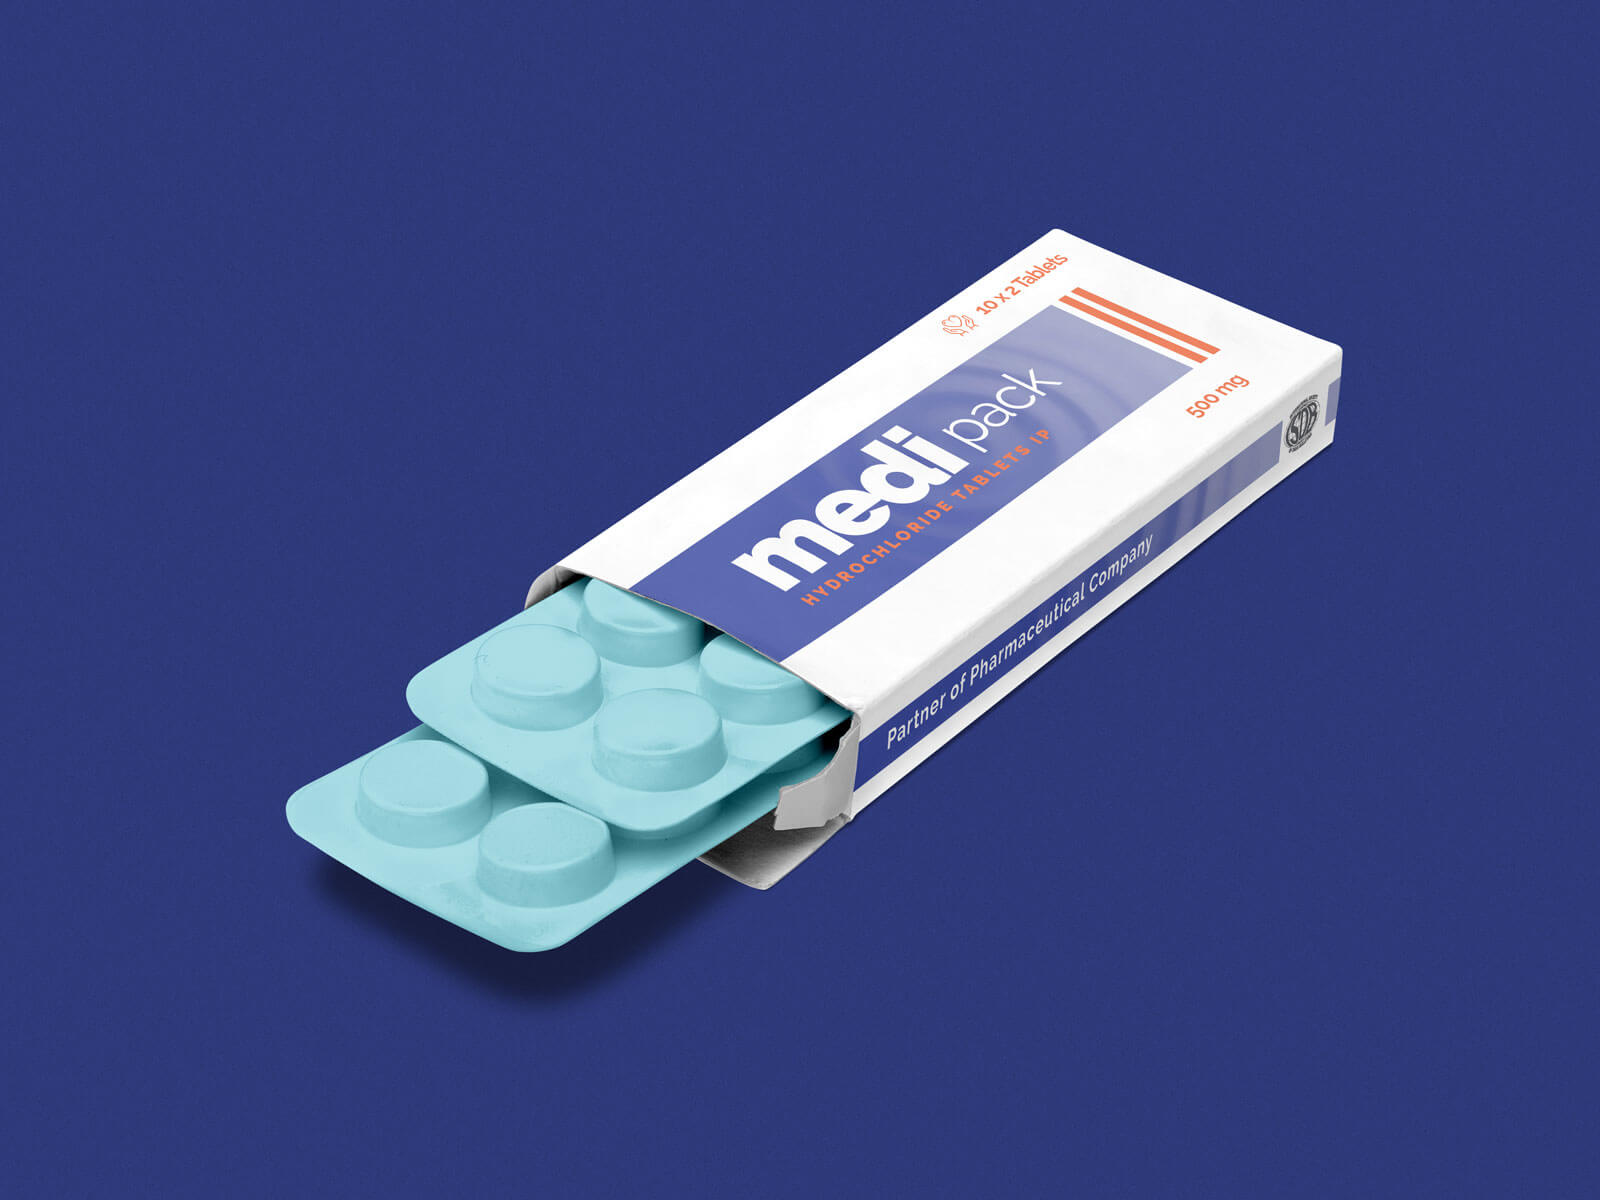 Free-Pharmaceutical-Medicine-Pill-Tablet-Box-Packaging-Mockup-PSD